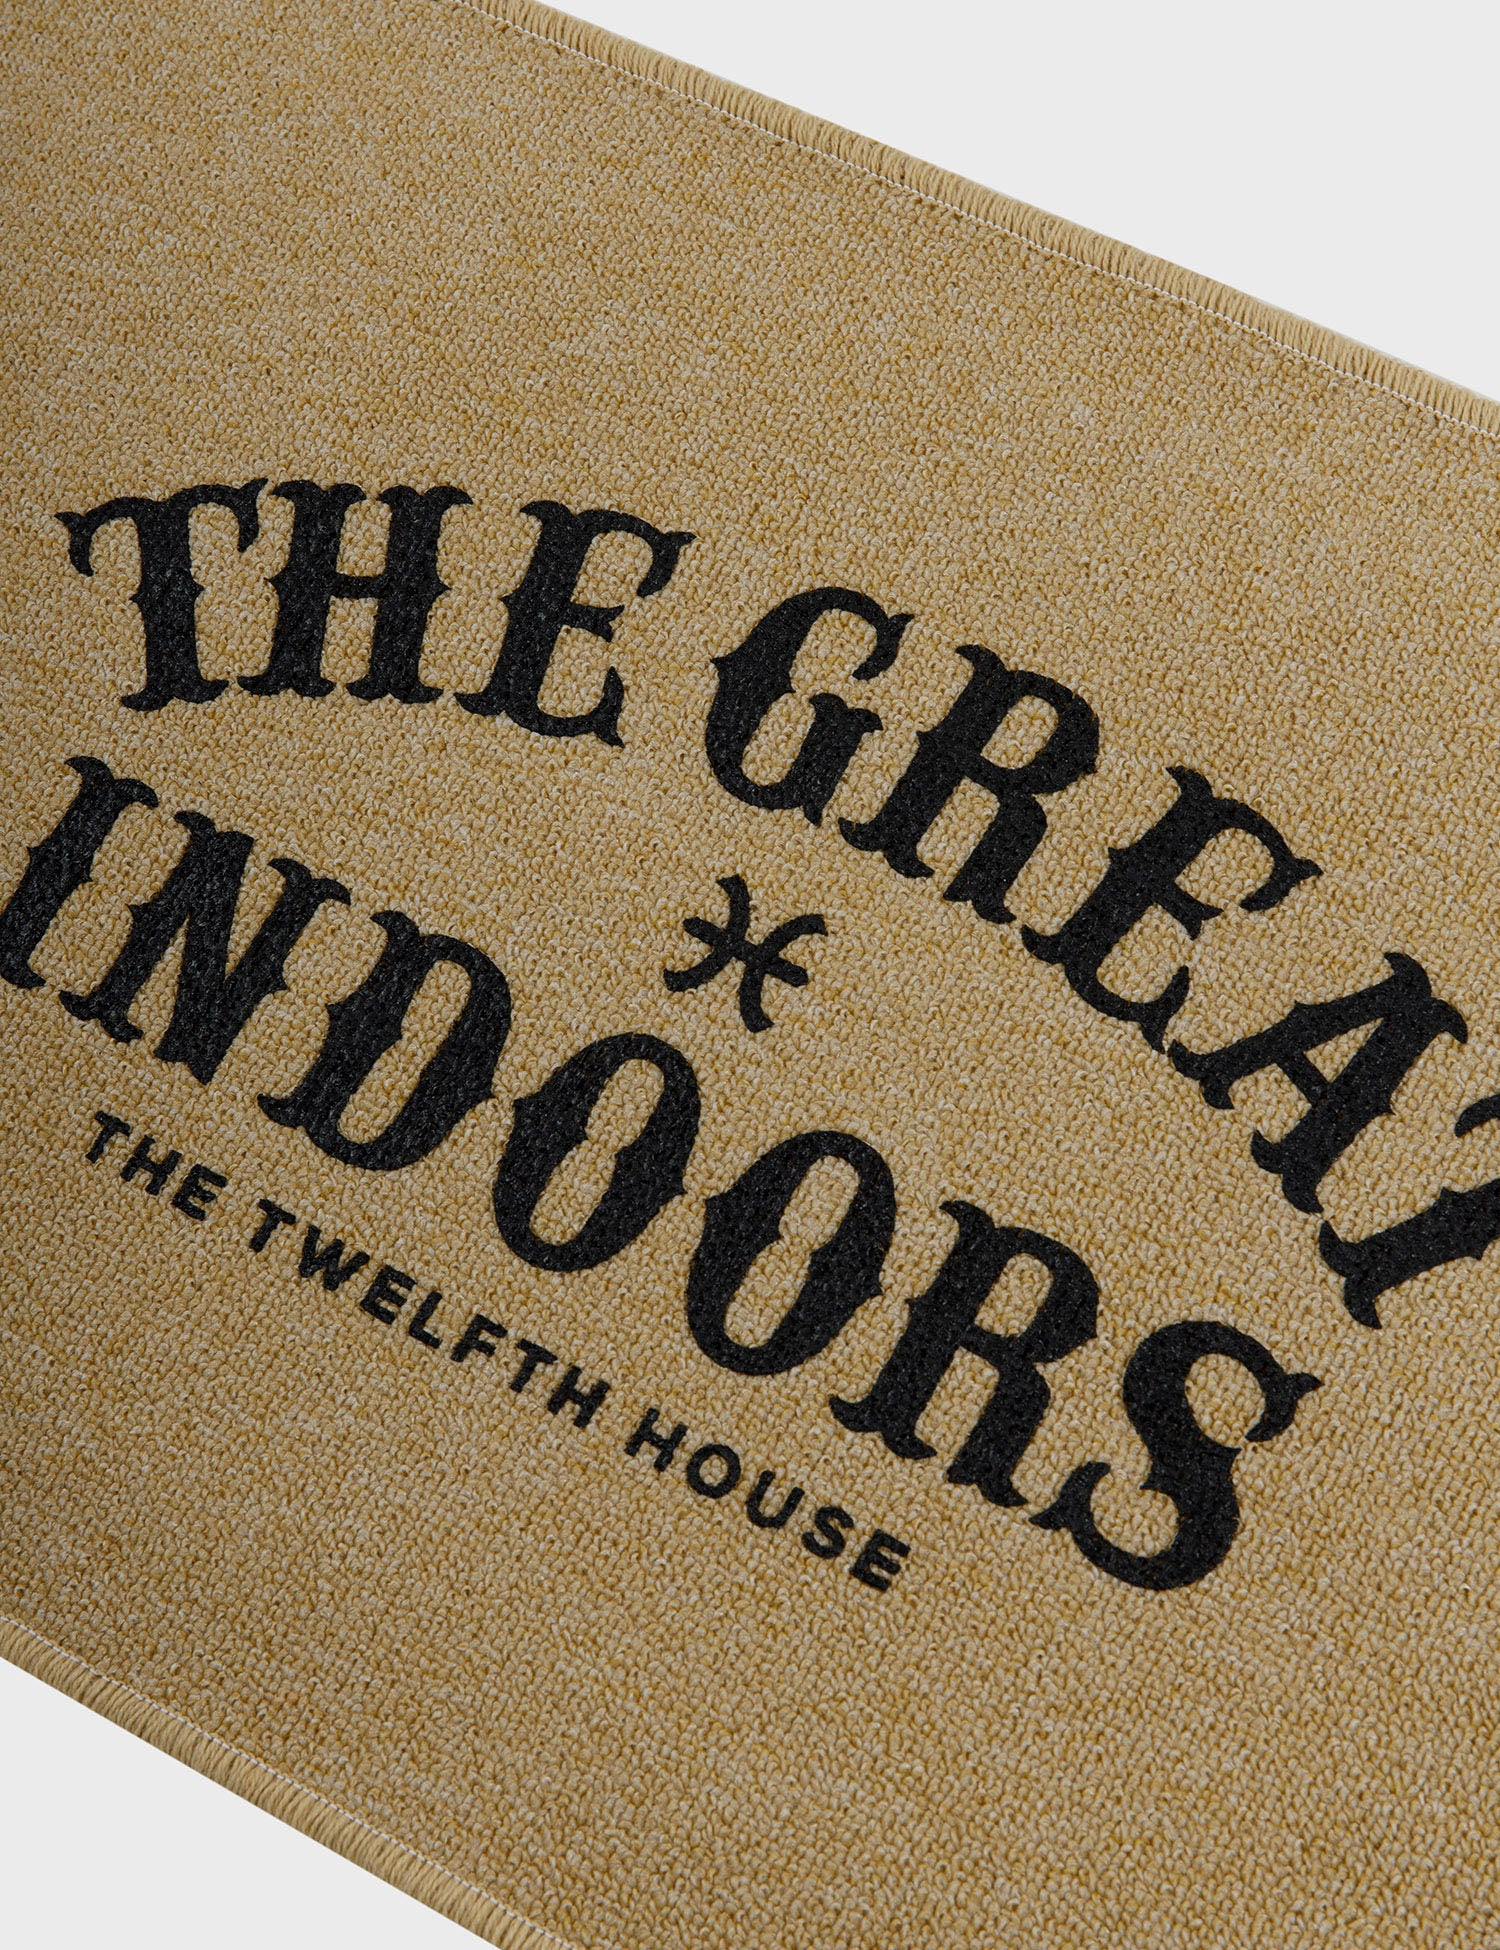 The Great Indoors Doormat